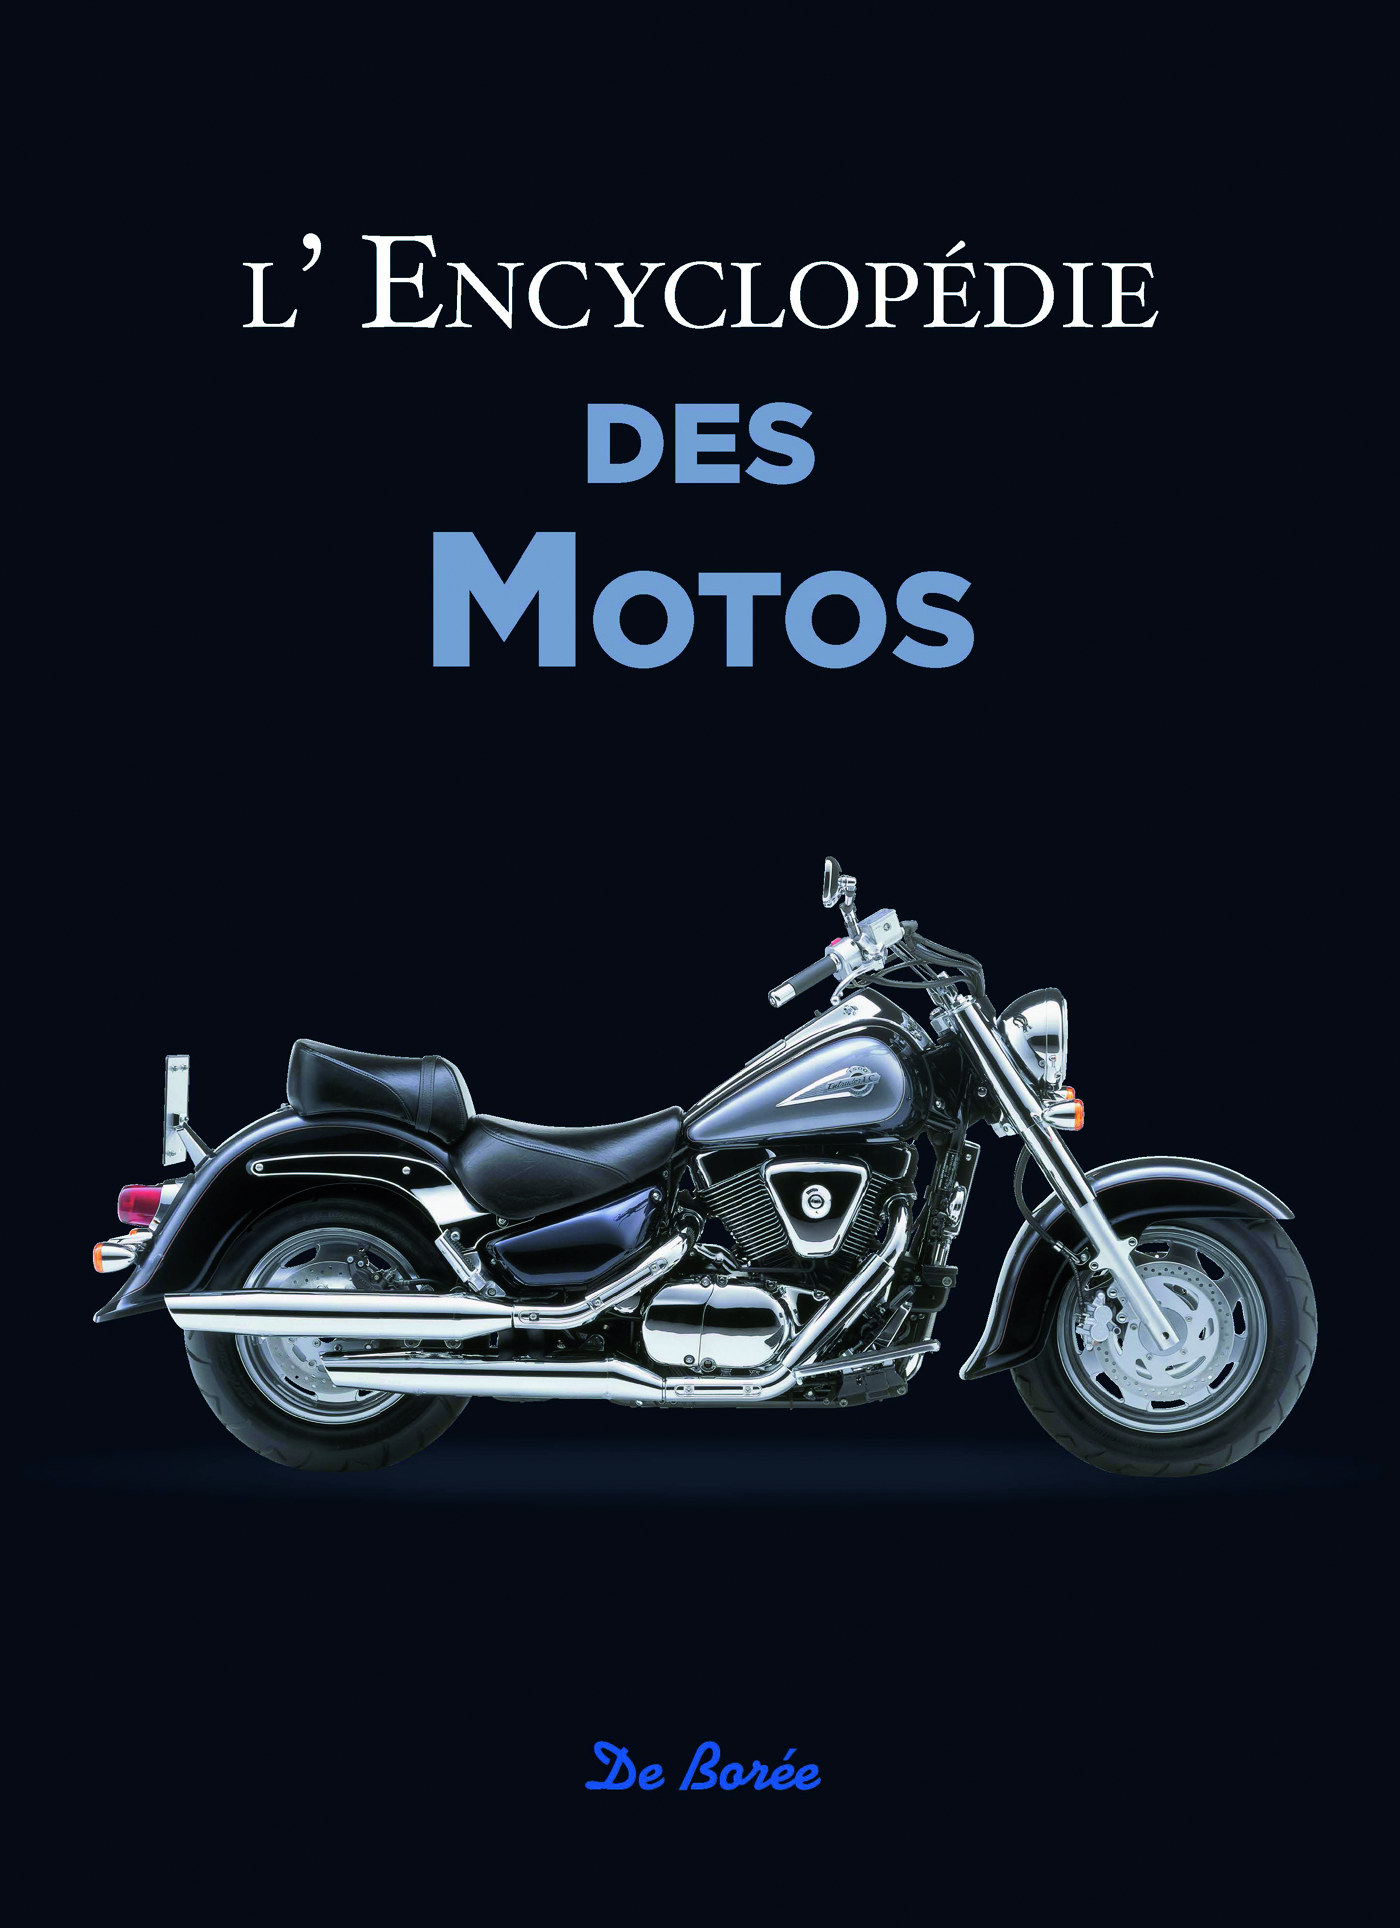 ENCYCLOPEDIE DES MOTOS (L')